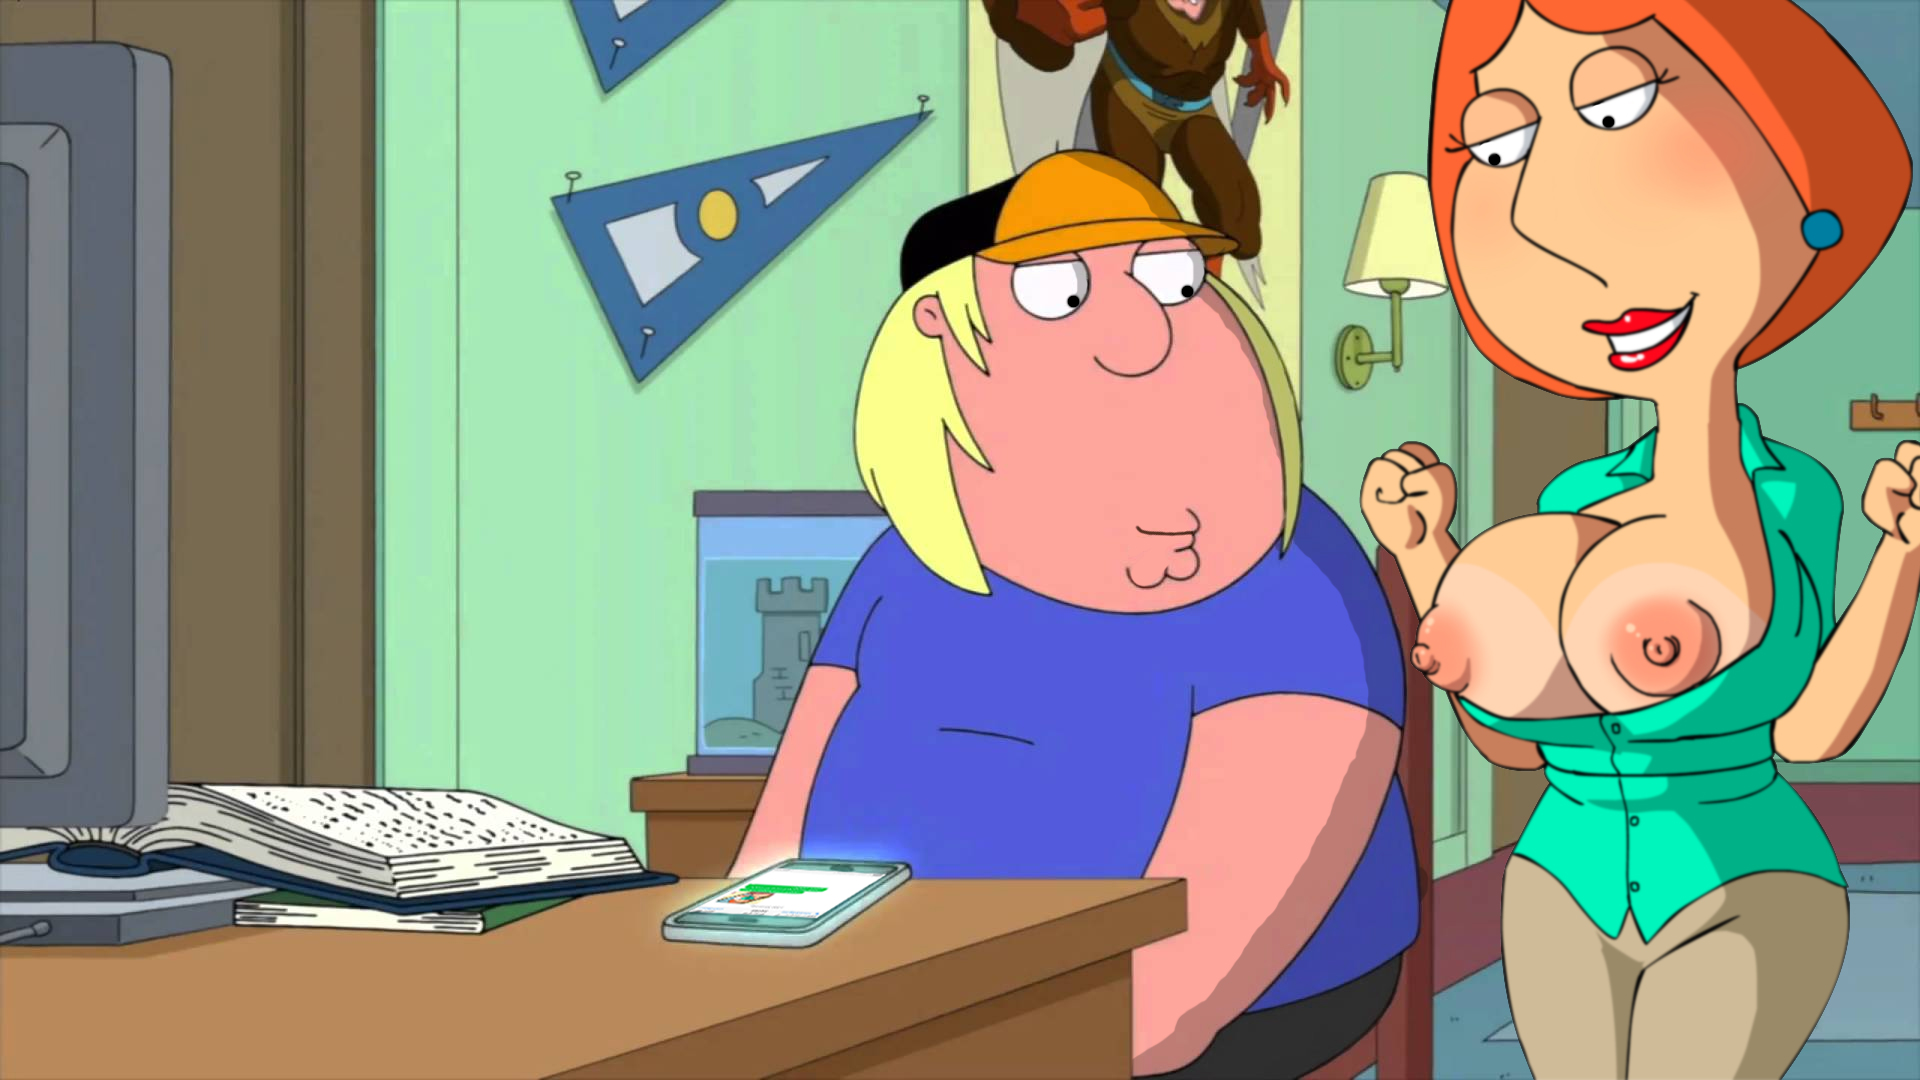 Ready Lois griffin slut whore thanks for